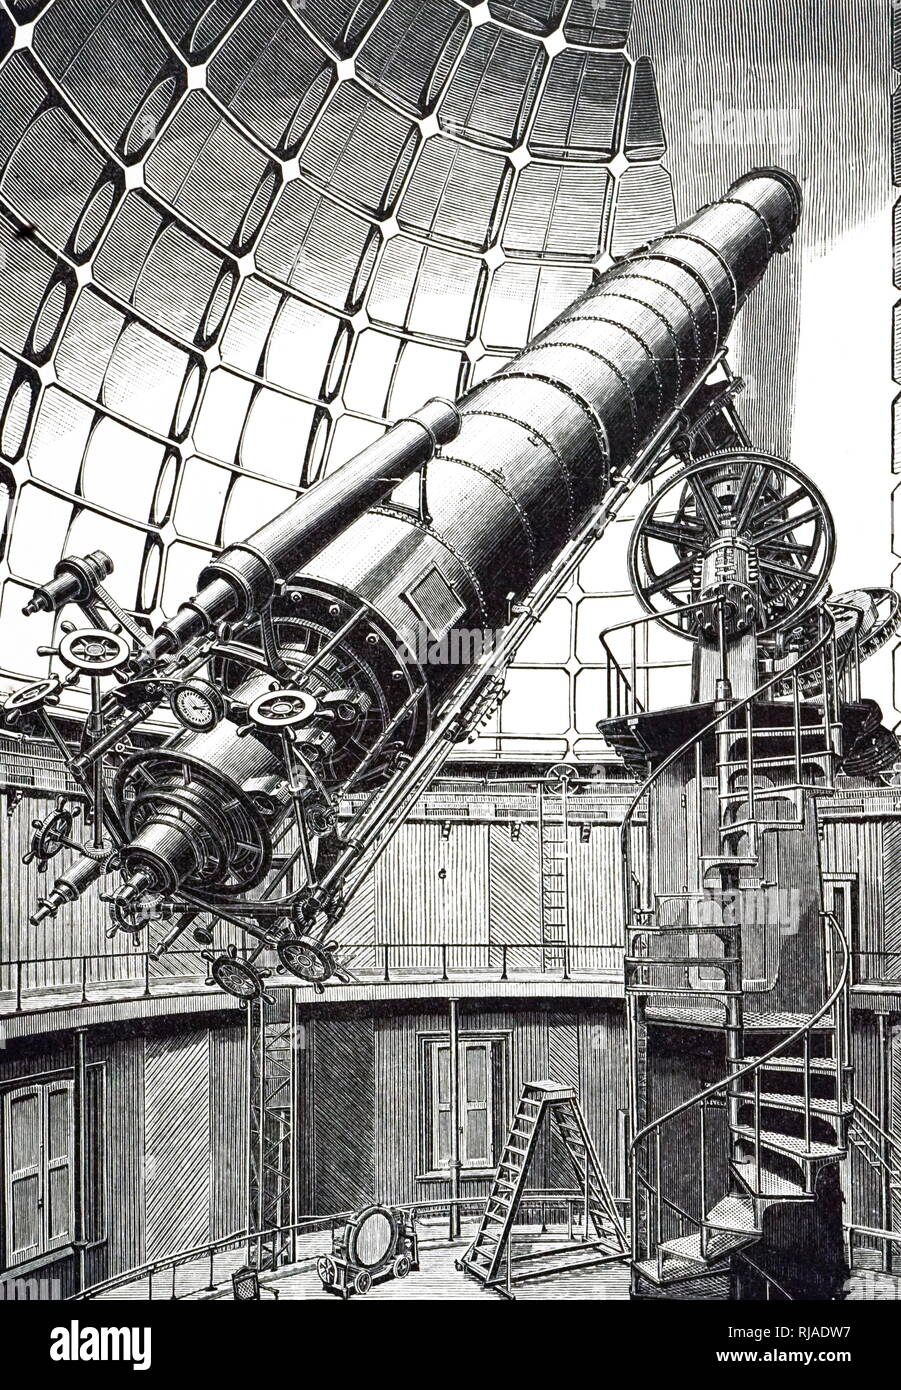 An engraving depicting a 36-inch refractor at the Lick Observatory. One of the world's two largest refractors it is on a 'German' style equatorial mounting, with the axis parallel to Earth's polar axis supported on a high pillar. The counterbalance weight for the telescope shows clearly. Dated 20th century - Stock Image